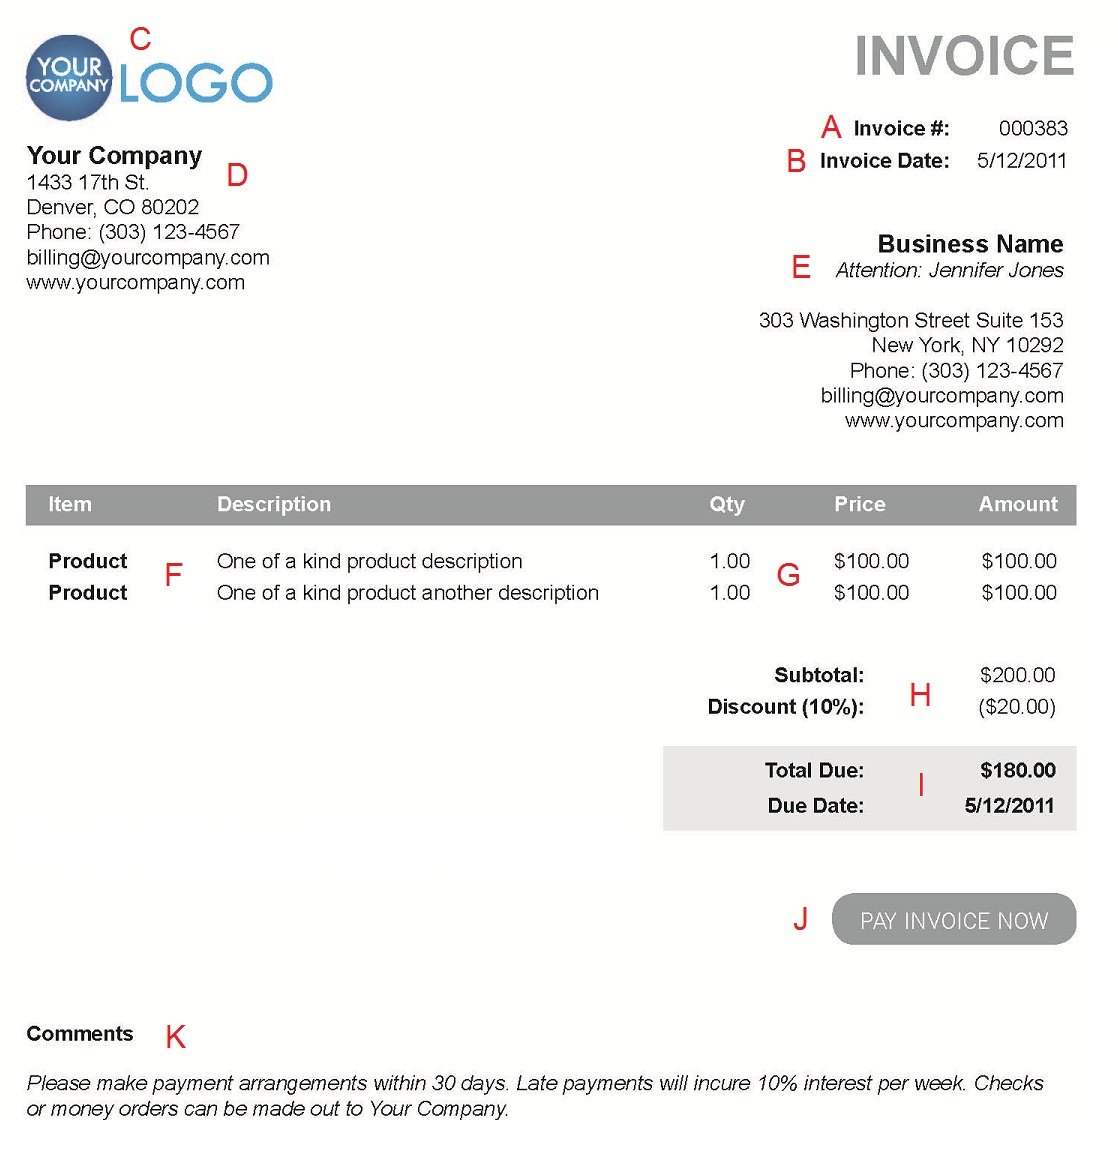 Patriotexpressus  Winning The  Different Sections Of An Electronic Payment Invoice With Luxury A  With Captivating Recruitment Invoice Also Zoho Invoice Template In Addition Automatic Invoice And What Needs To Be On An Invoice As Well As Cool Invoice Designs Additionally Free Uk Invoice Template Word From Paysimplecom With Patriotexpressus  Luxury The  Different Sections Of An Electronic Payment Invoice With Captivating A  And Winning Recruitment Invoice Also Zoho Invoice Template In Addition Automatic Invoice From Paysimplecom